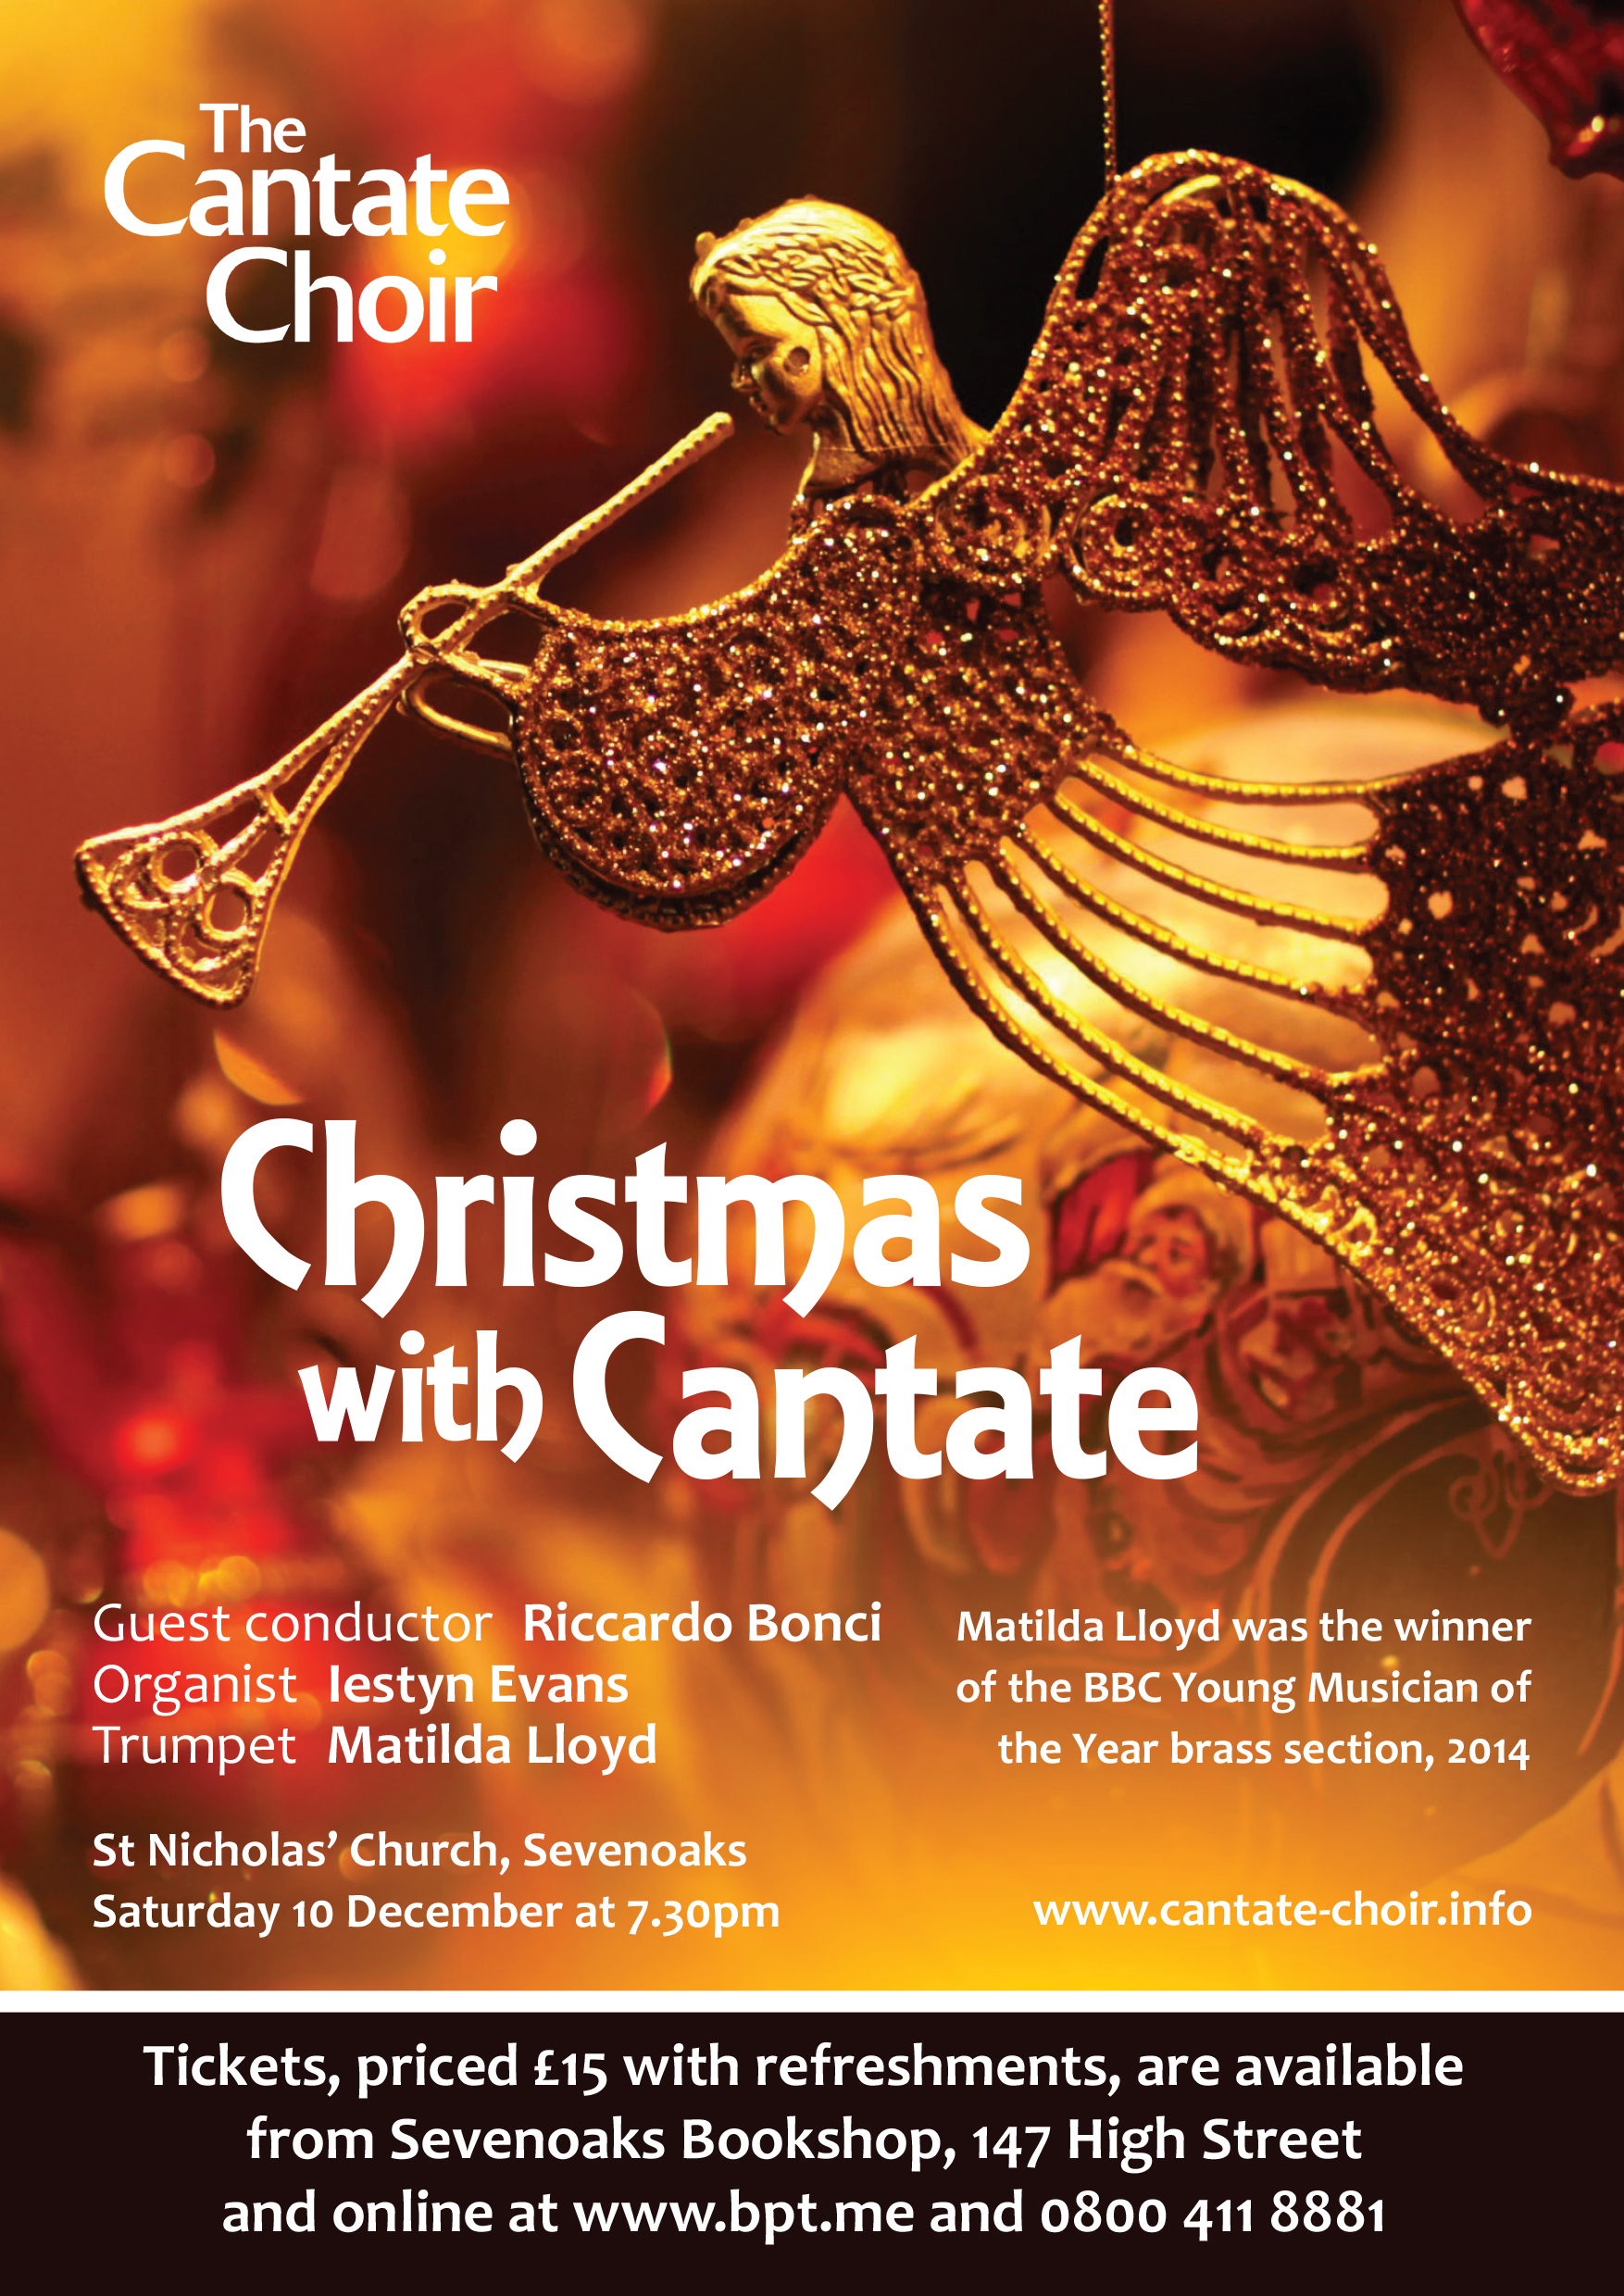 Christmas Concerts Near Me.Christmas With Cantate The Cantate Choir